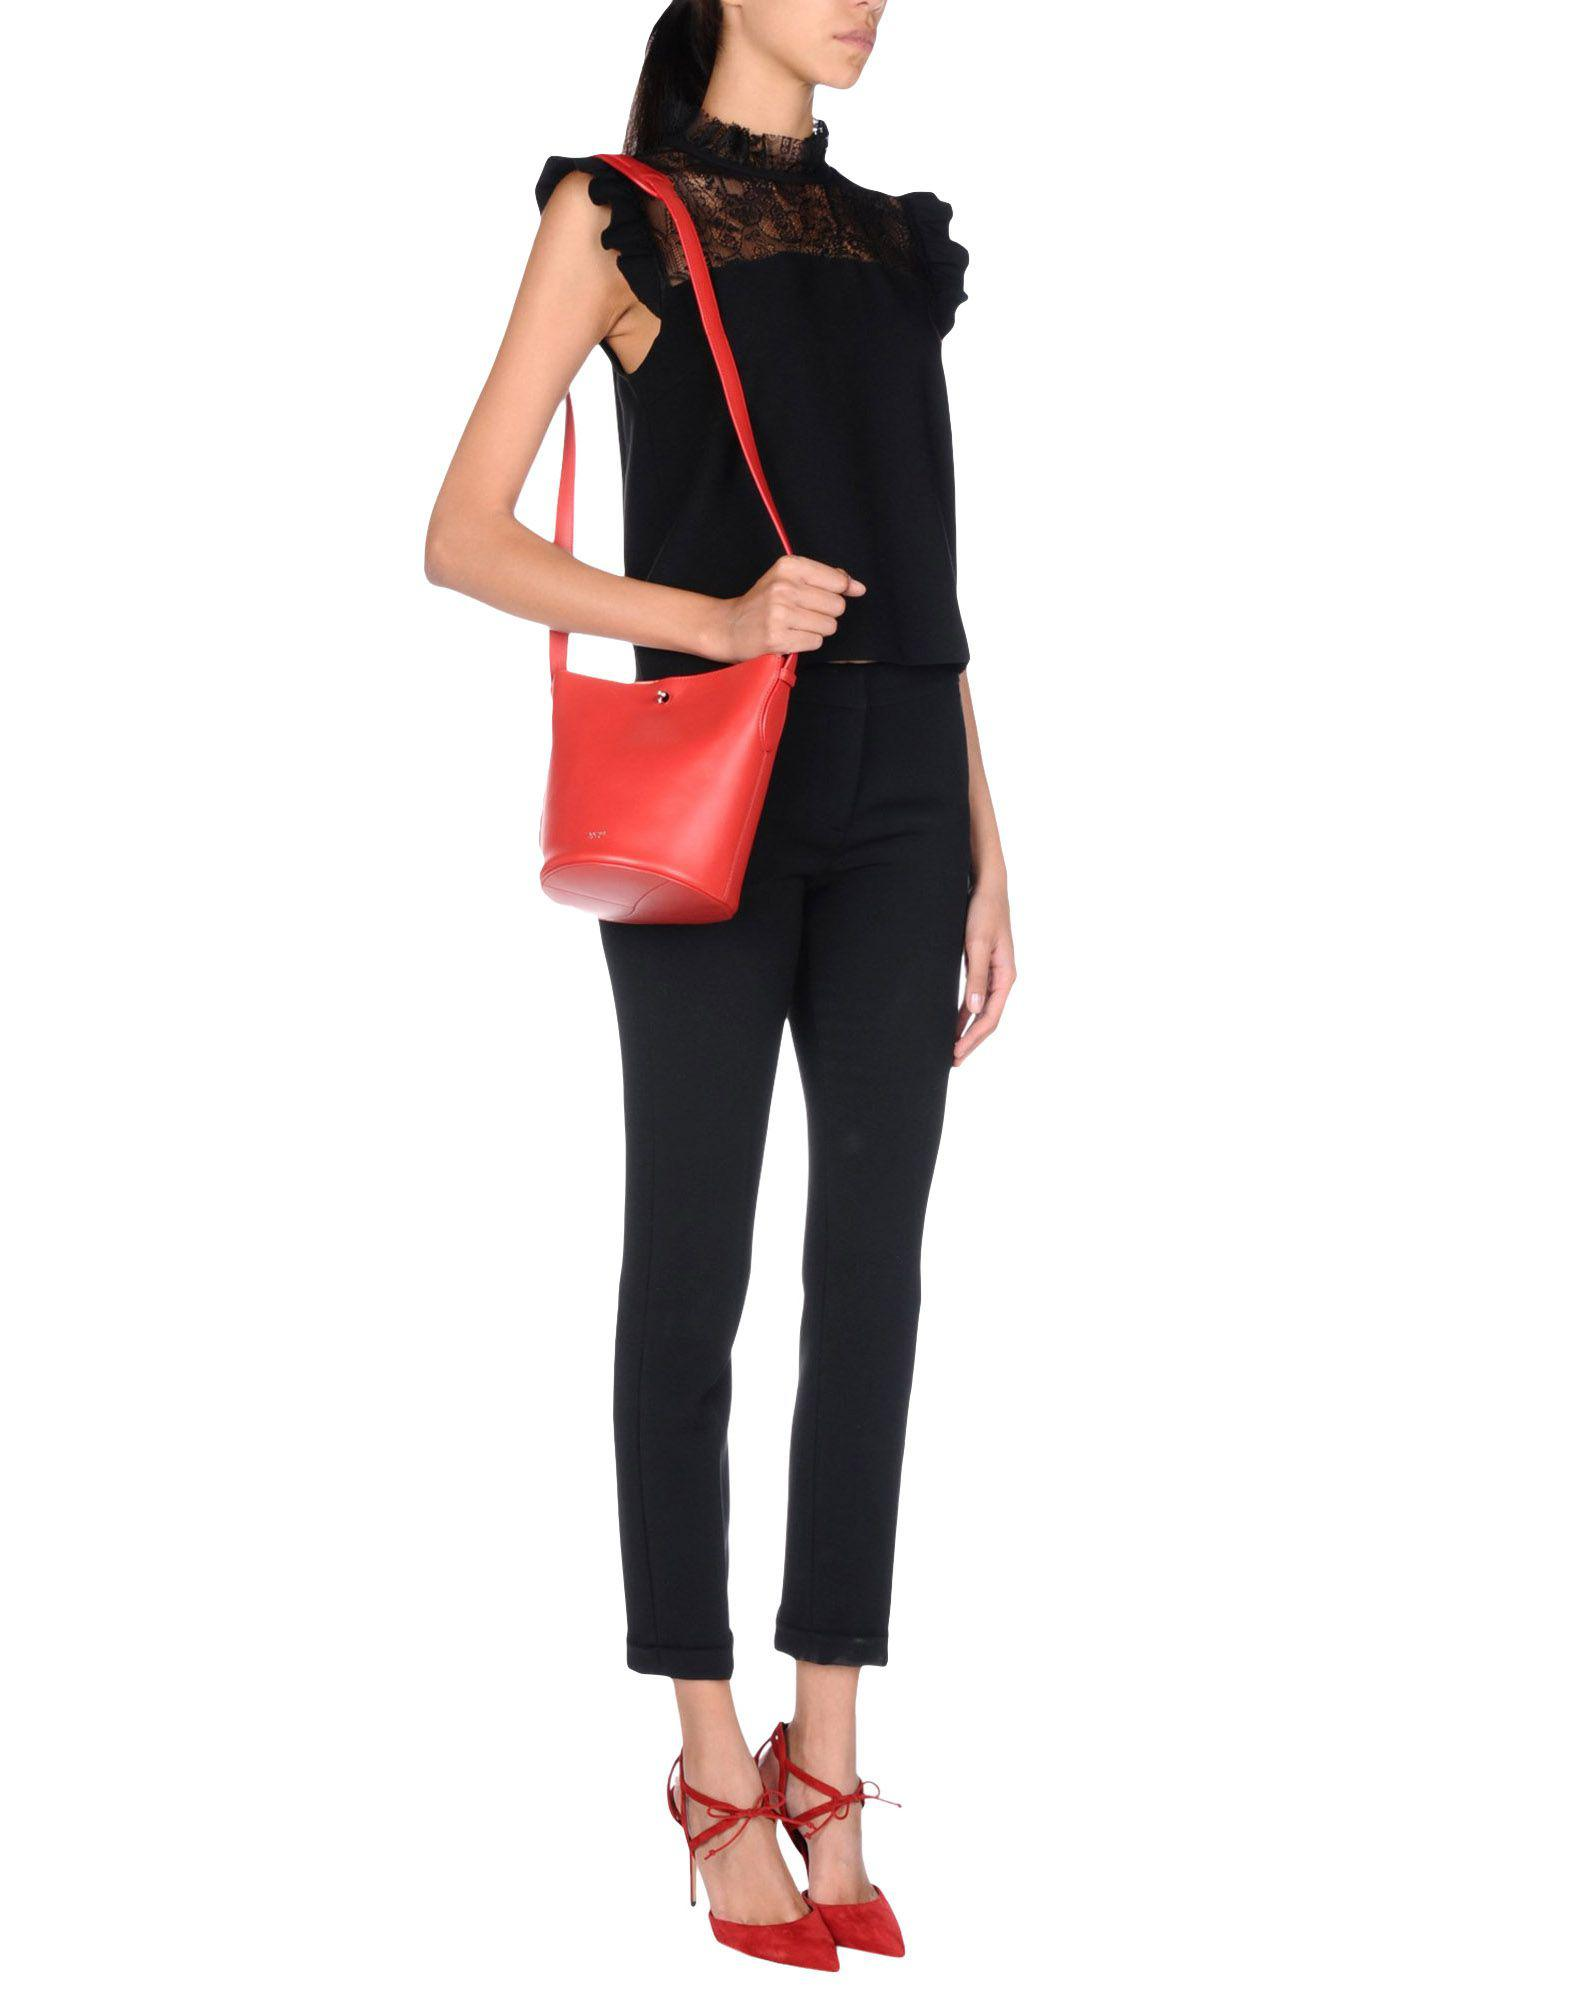 Rochas Leather Cross-body Bag in Red